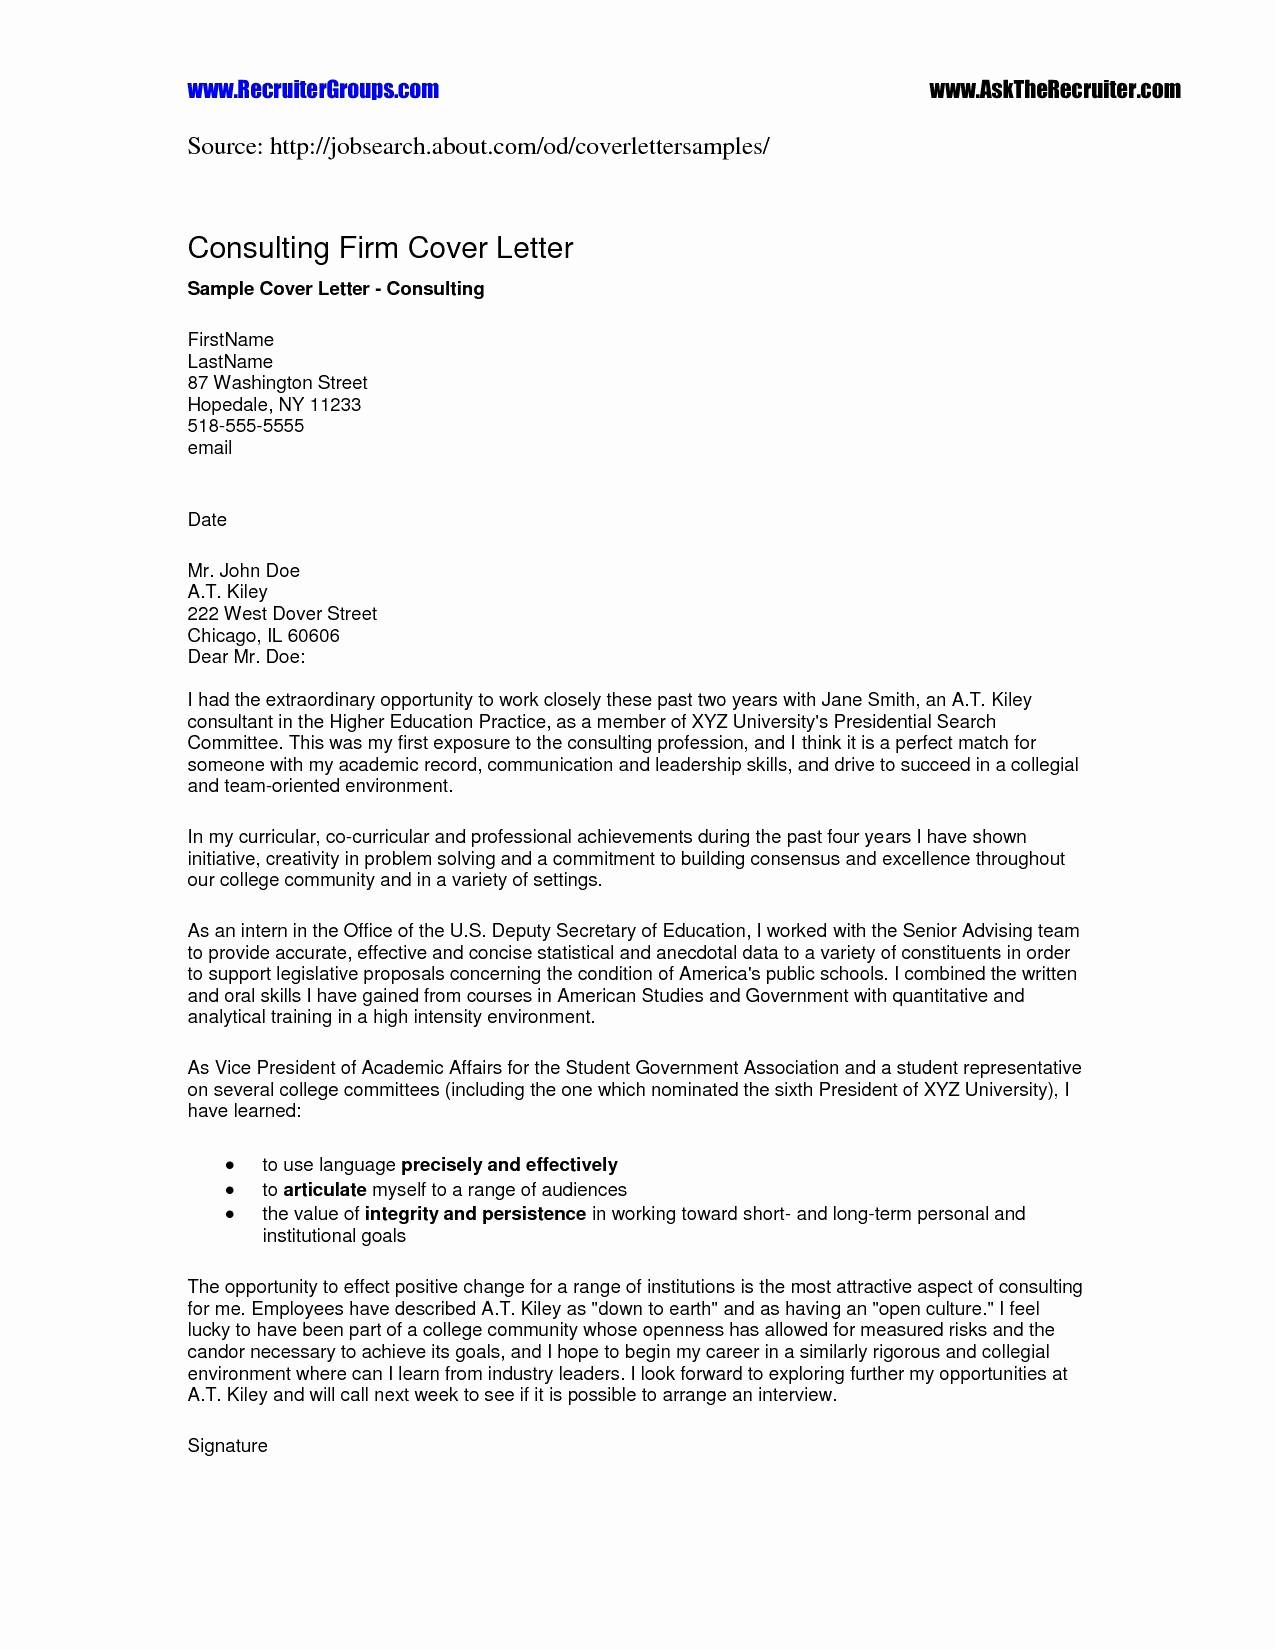 Change Of Leadership Letter Template - Sample Cover Letter for Change Pic Sample Cover Letter